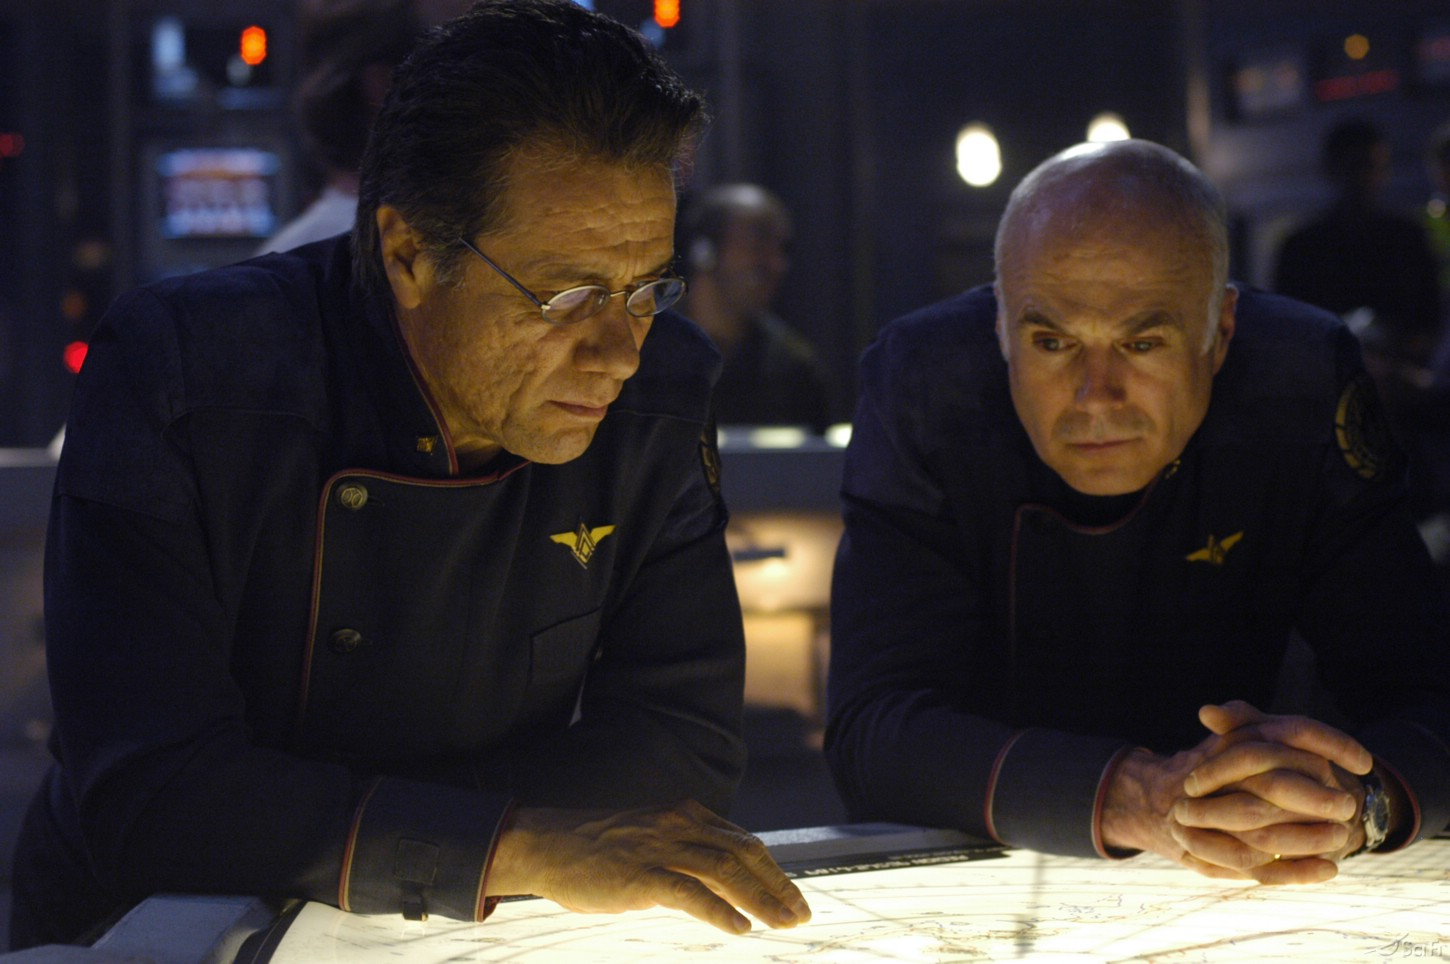 Edward James Olmos and Michael Hogan in Battlestar Galactica (2004)